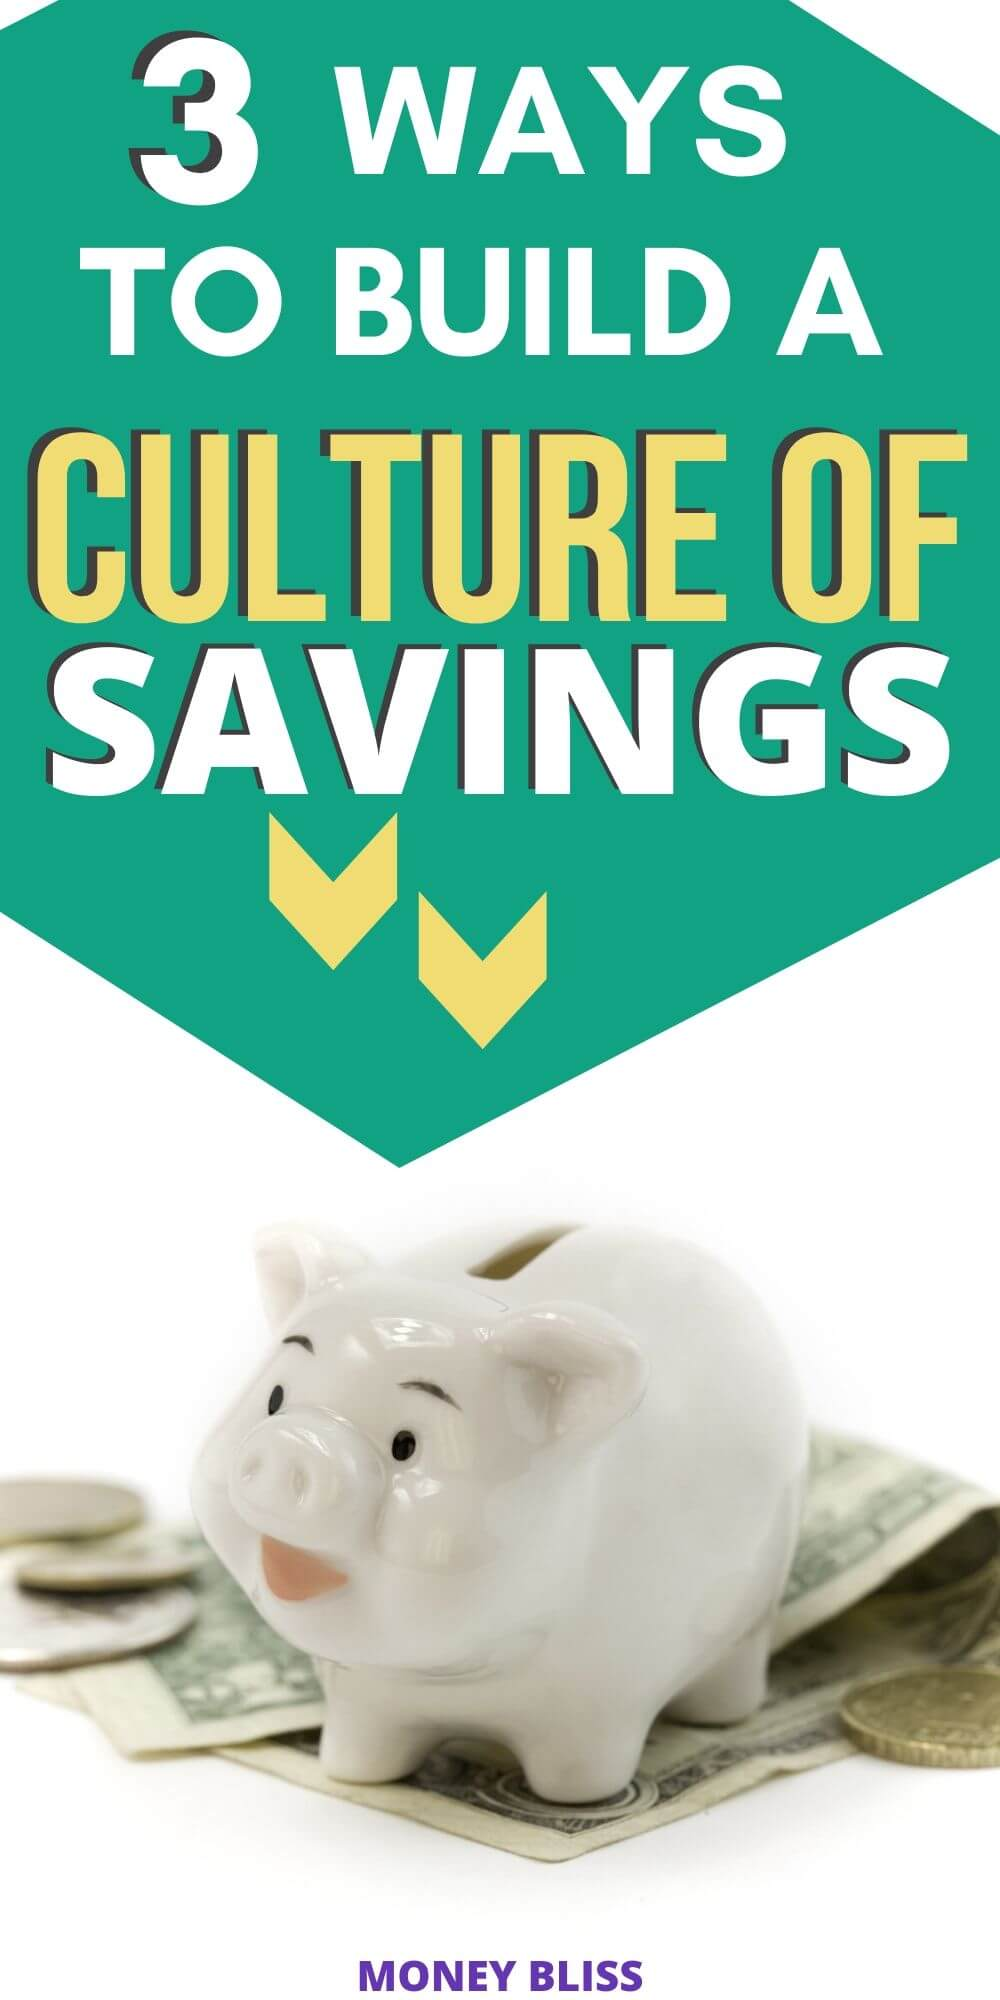 First of all, what is the definition of saving culture? Learn the importance of saving culture. Find money saving tips. Understand how to build a culture of saving. Get into the habit of saving money. Saving money ideas. Learn how to save money in your 20s. Put a priority on your financial planning.